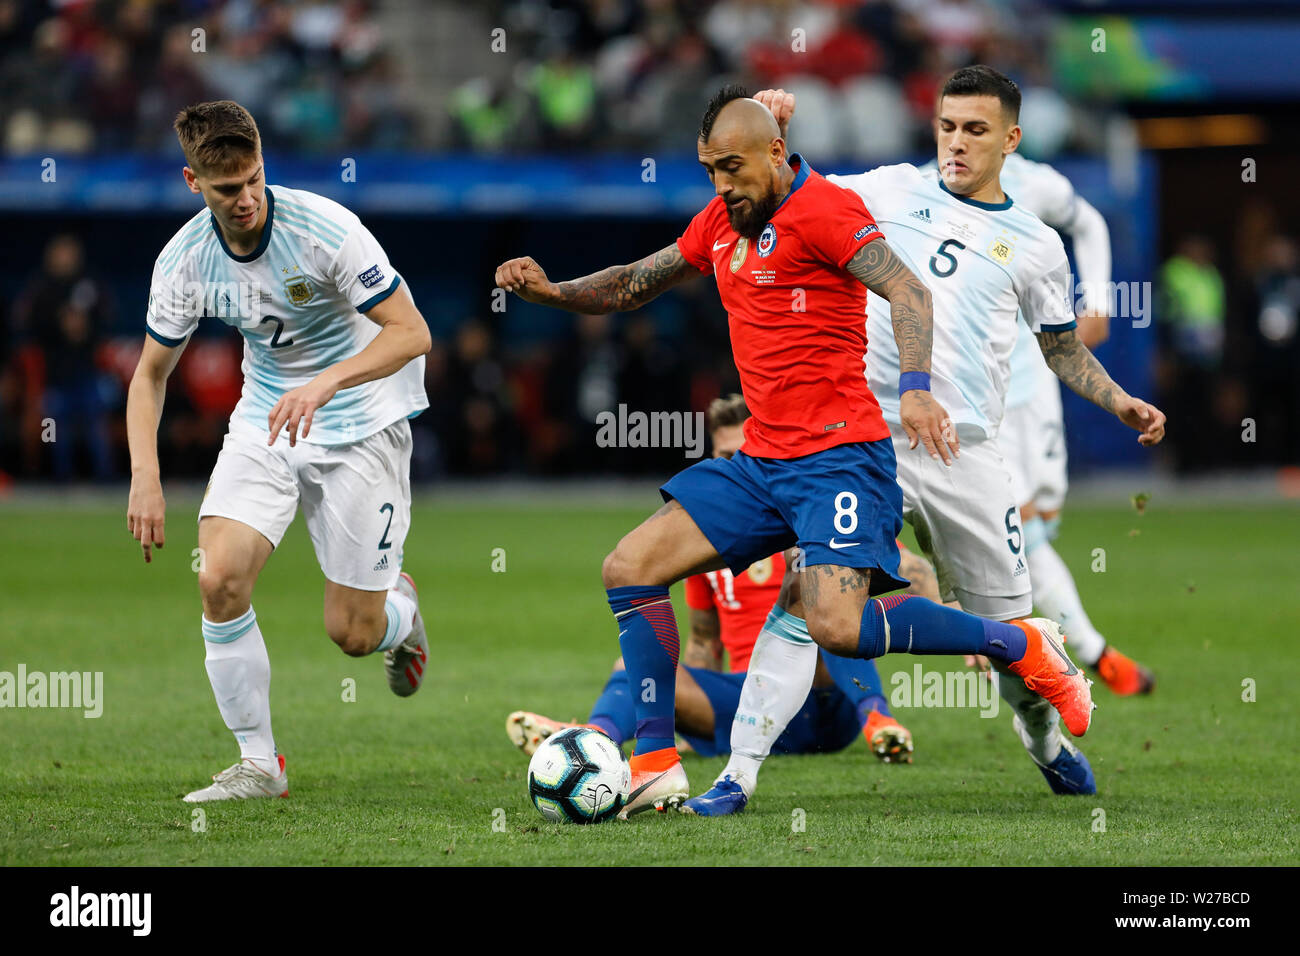 SÃO PAULO, SP - 06.07.2019: ARGENTINA VS. CHILE - Arturo Vidal during match between Argentina and Chile, valid for the dispute of the third place of Copa America 2019, held this Saturday (06) at the Corinthians Arena in São Paulo, SP. (Photo: Ricardo Moreira/Fotoarena) - Stock Image